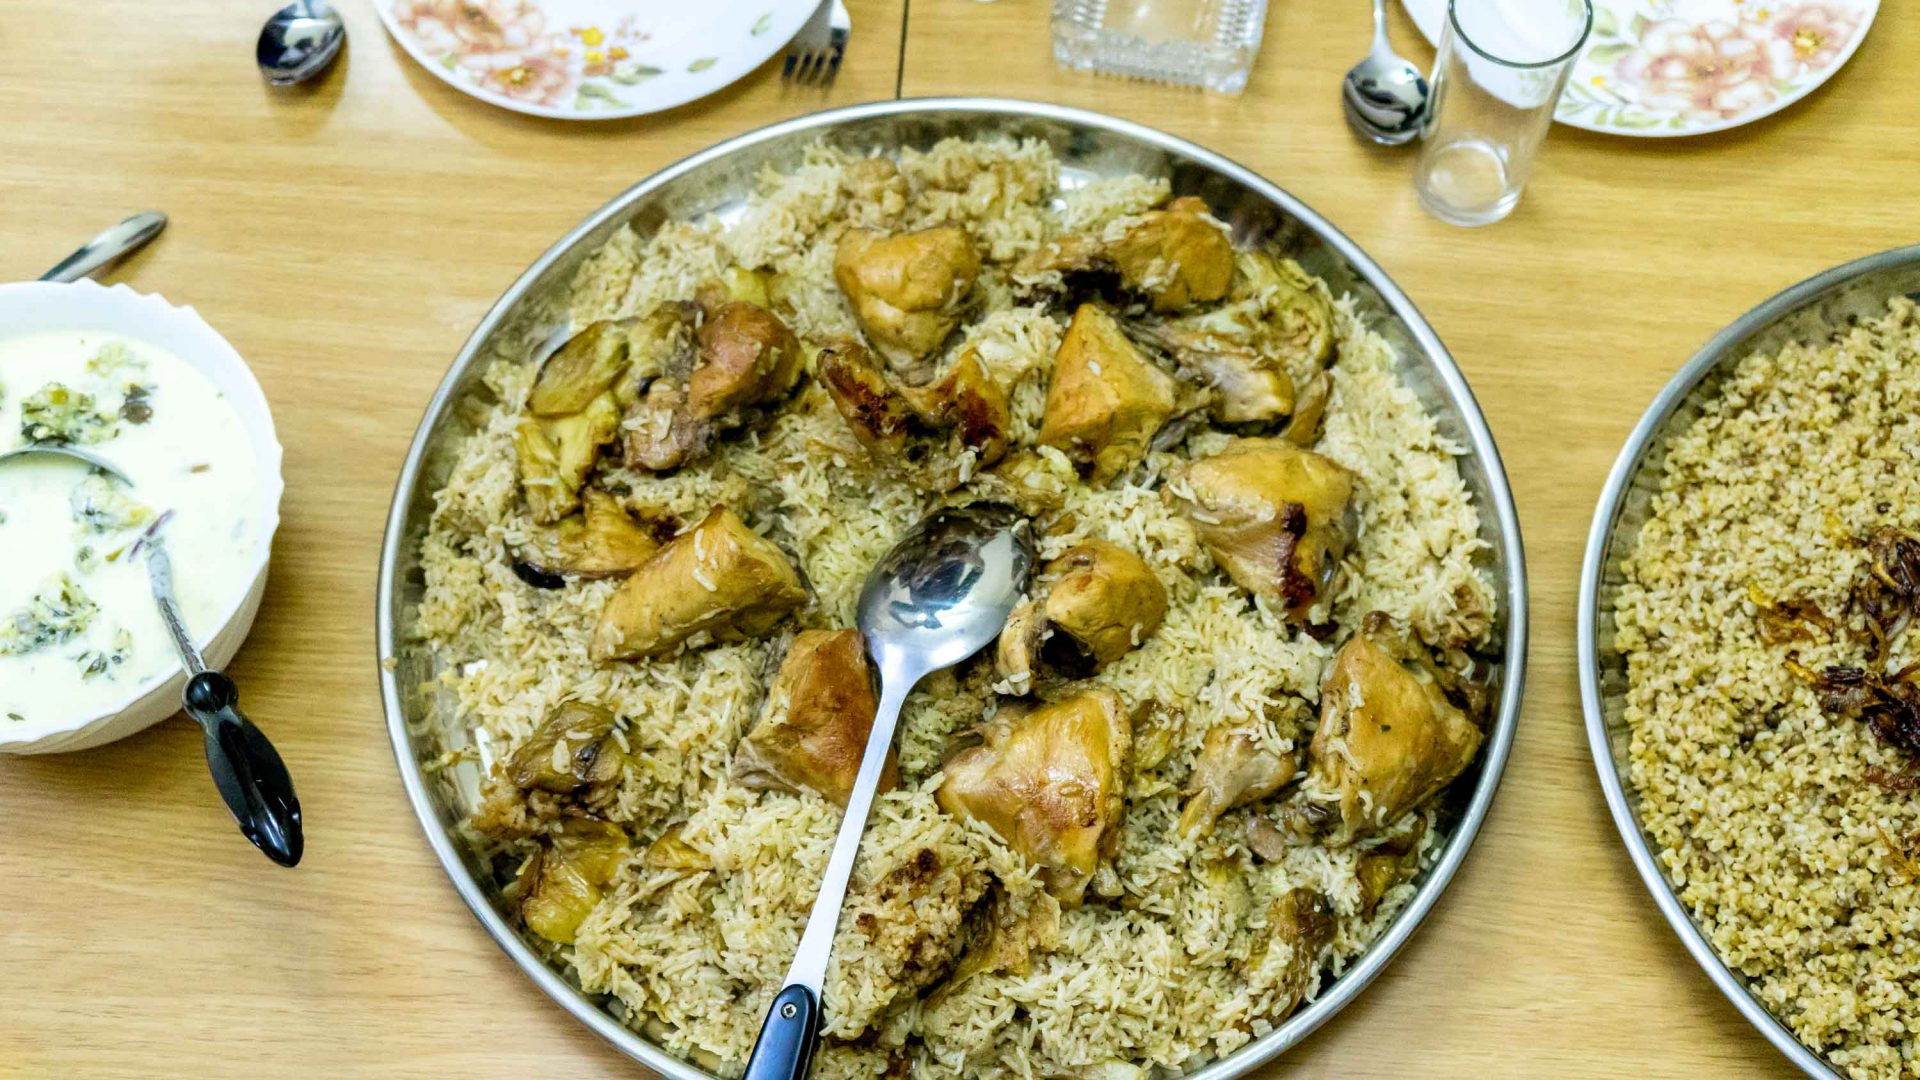 A traditional upside-down chicken and rice dish called Maklouba served at Galsoum's Kitchen.